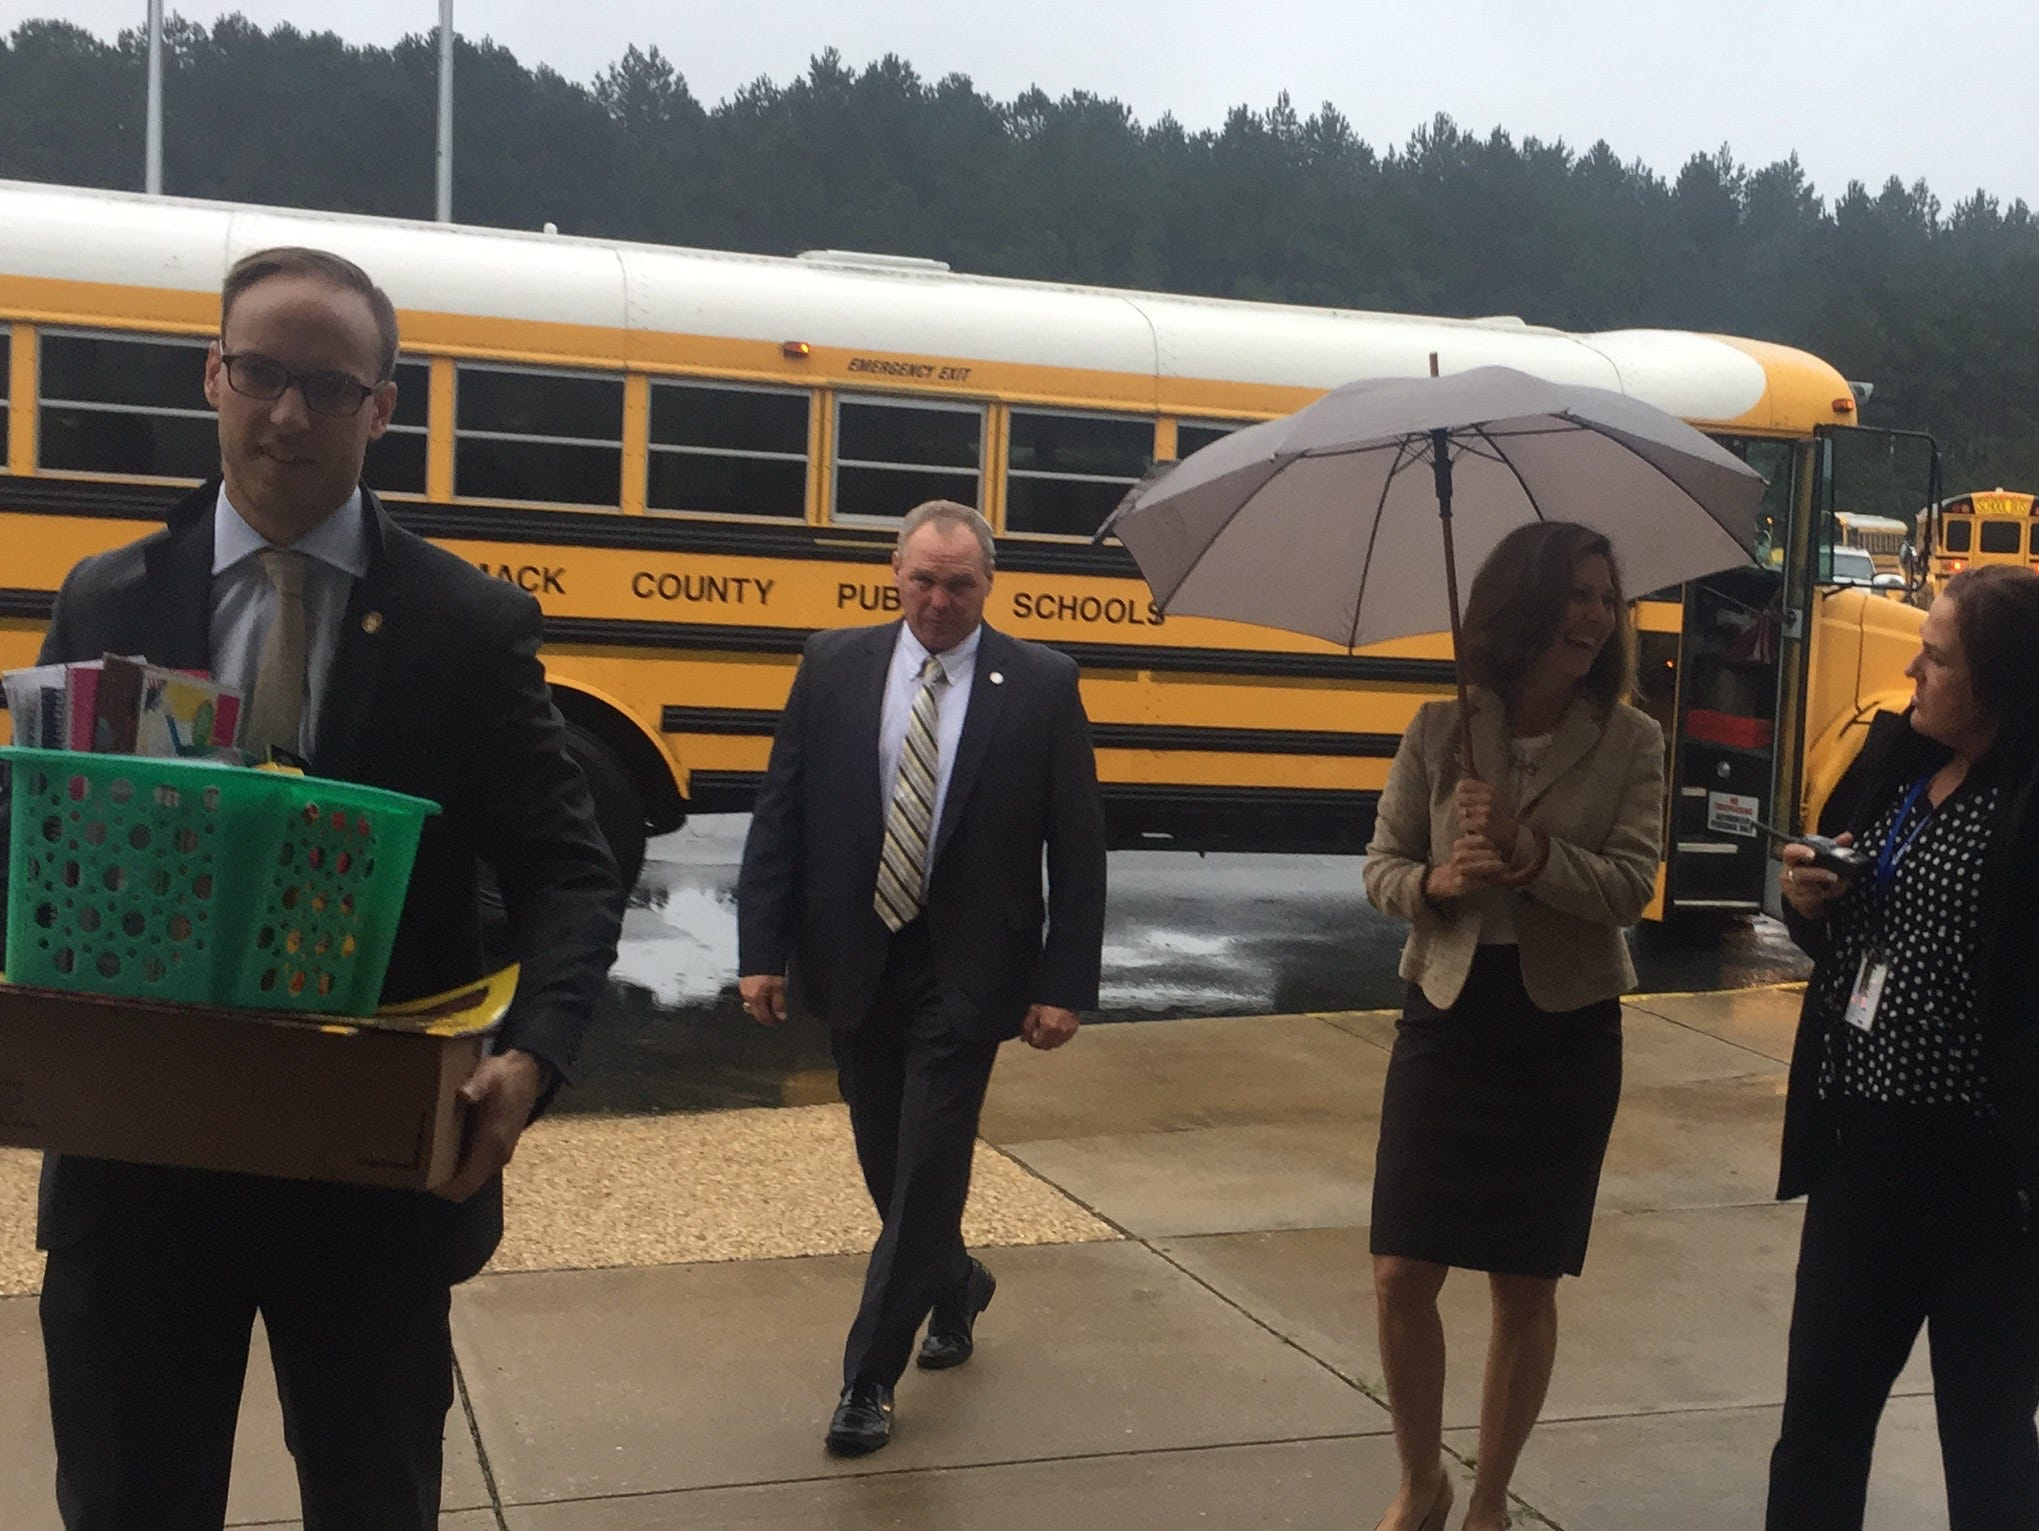 Virginia First Lady Pamela Northam, with umbrella, enters Accawmacke Elementary School in Daugherty, Virginia on Monday, Sept. 10, 2018.